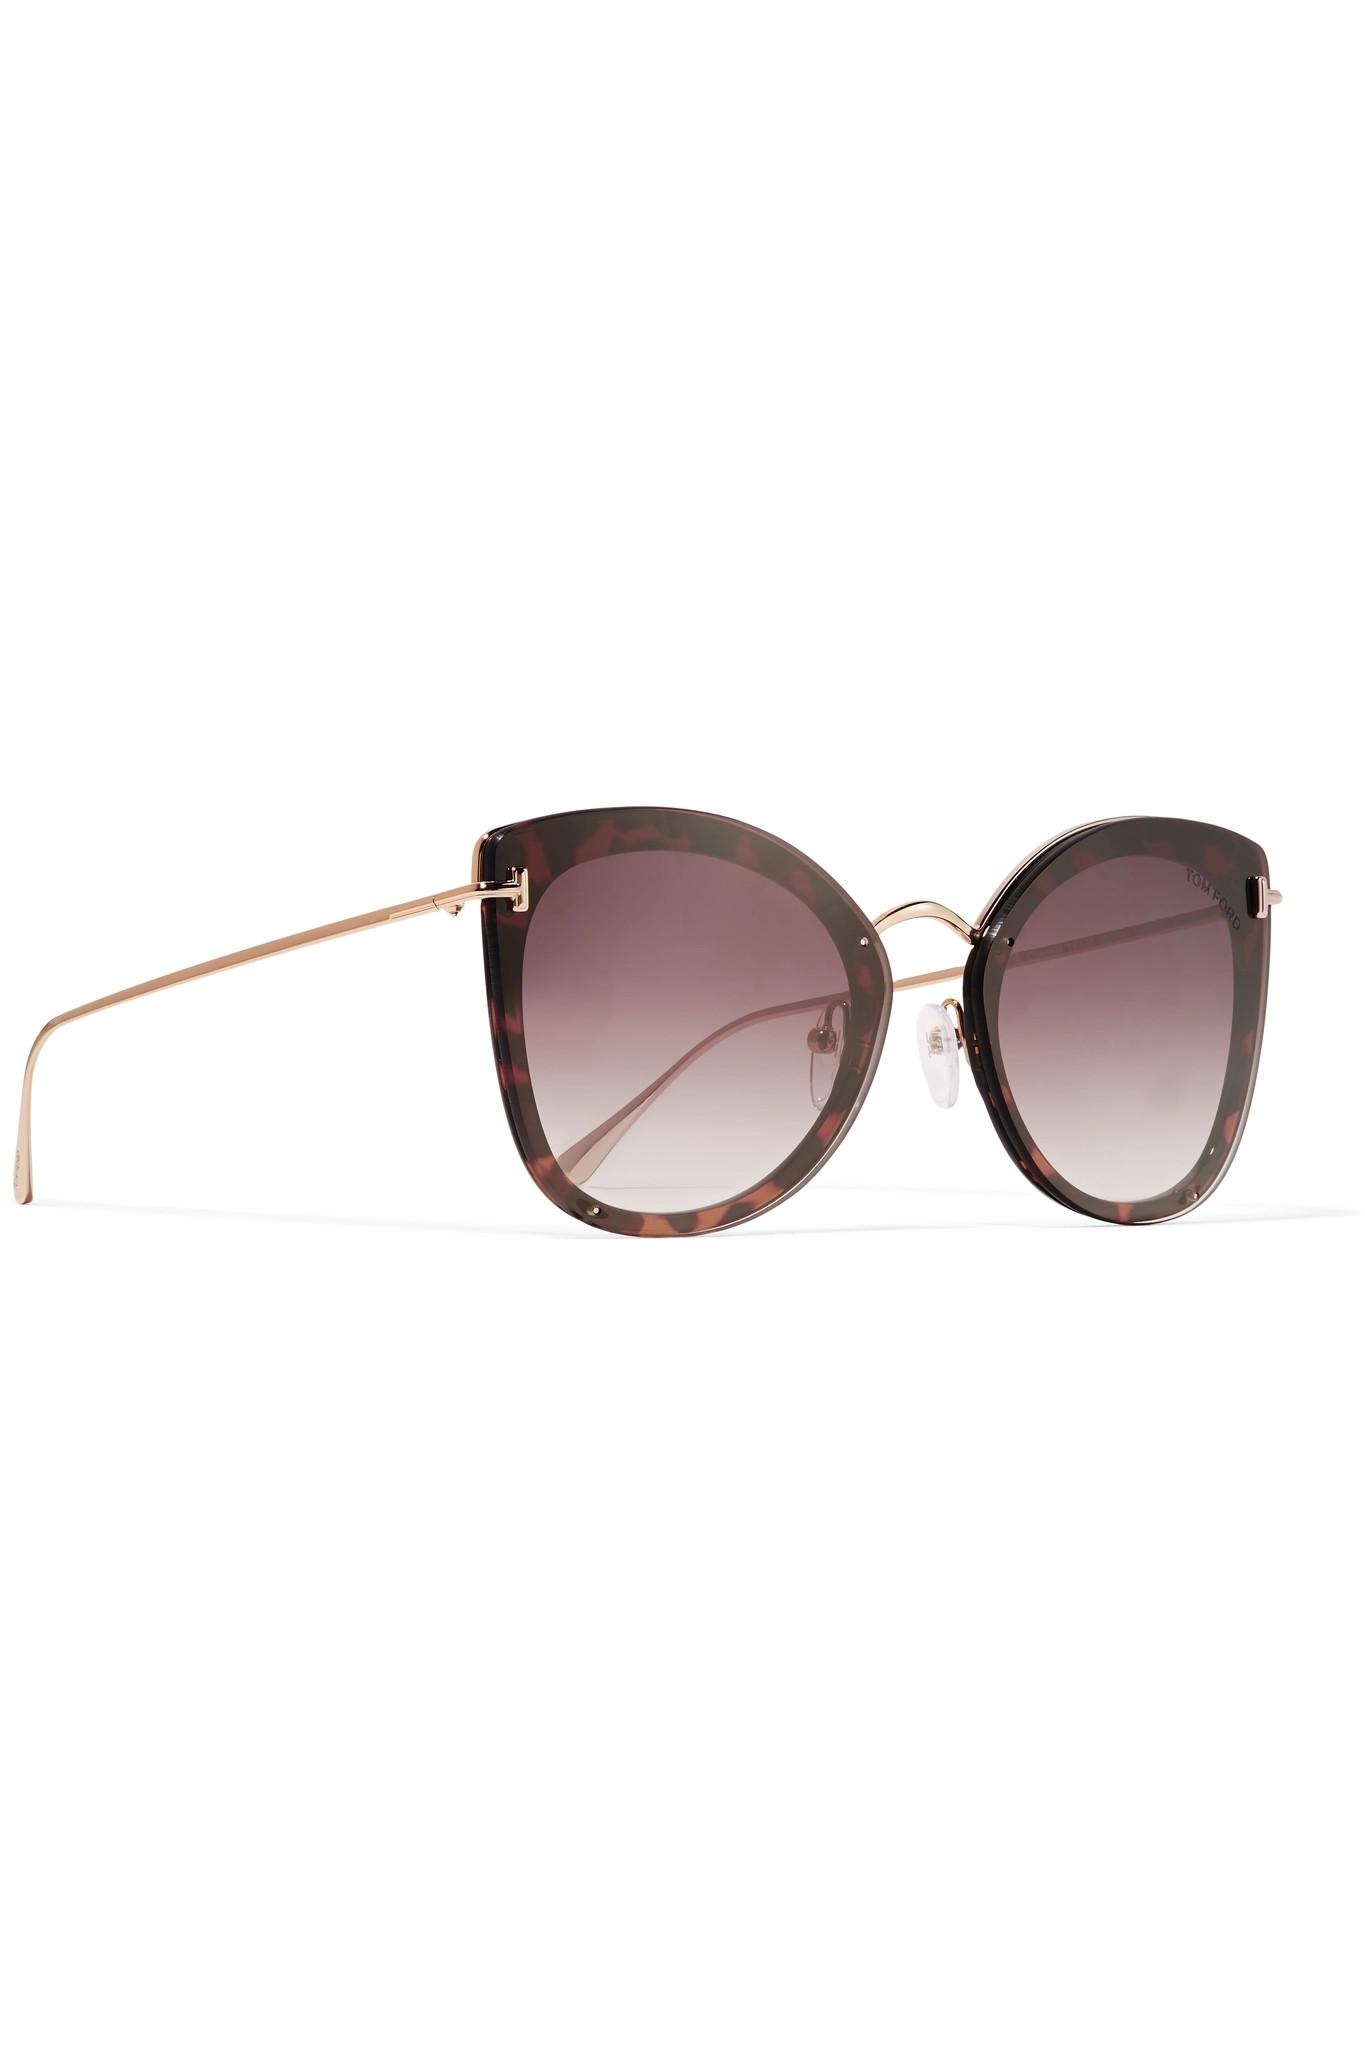 4c46a54049f6 Tom Ford - Multicolor Cat-eye Tortoiseshell Acetate And Gold-tone Sunglasses  - Lyst. View fullscreen